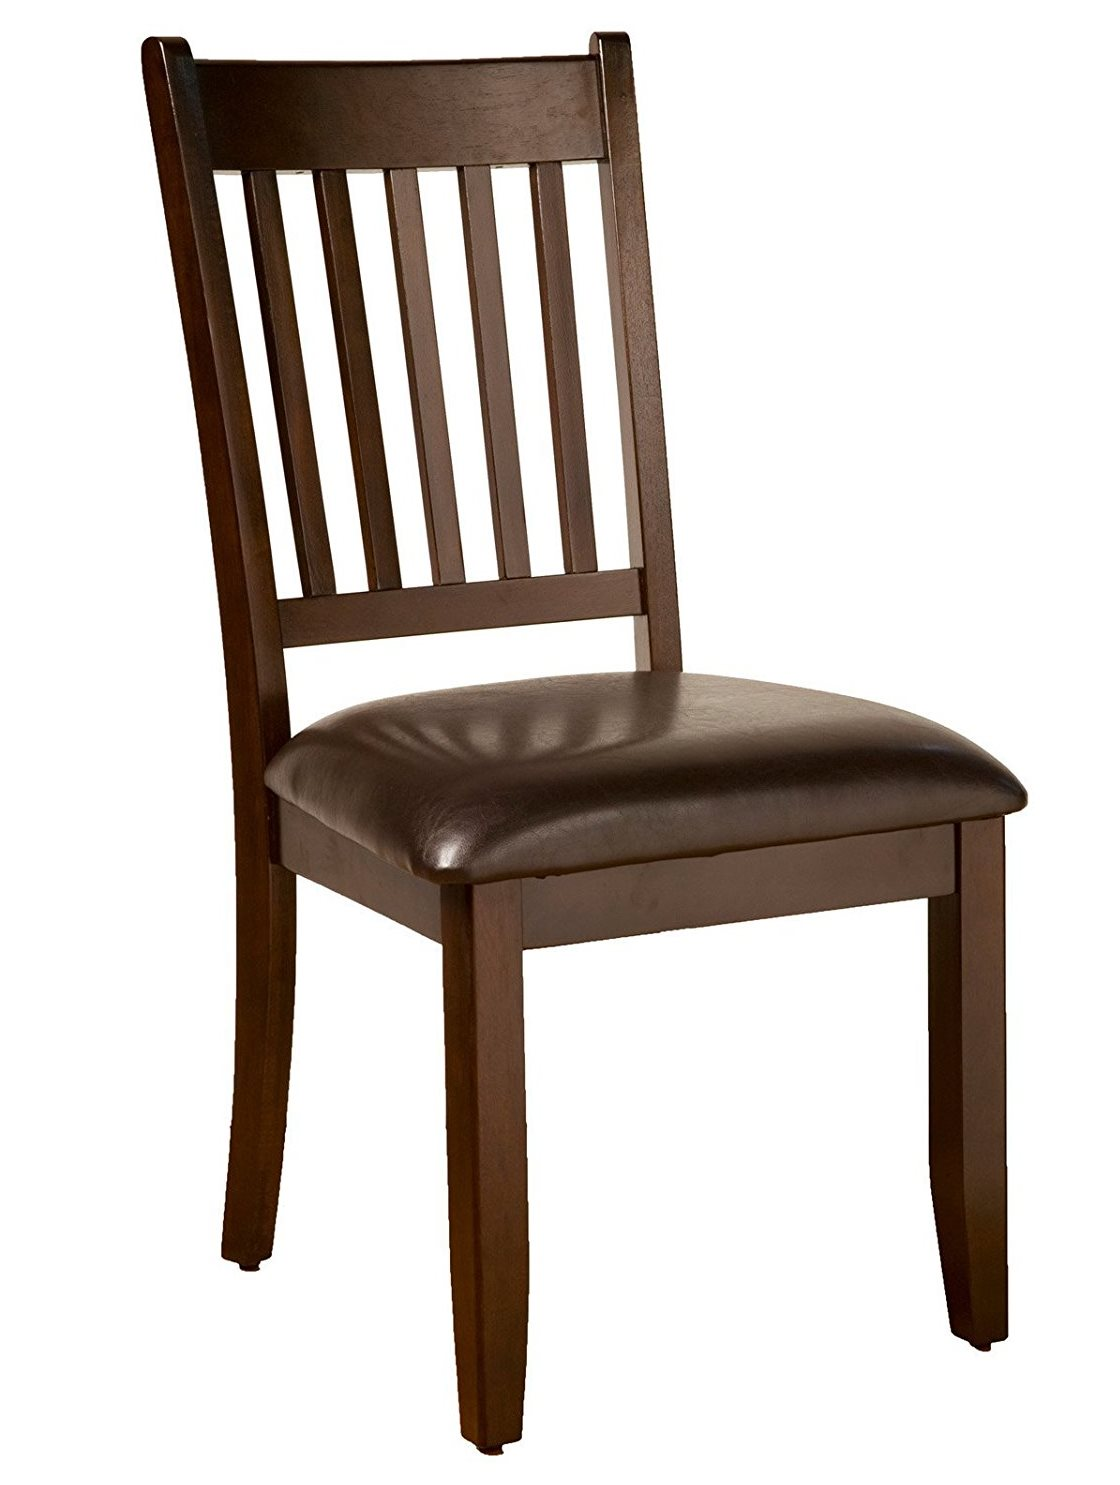 Capitola Side Chairs w/ Faux Leather Cushions (Set of 2) - Alpine Furniture 553-C